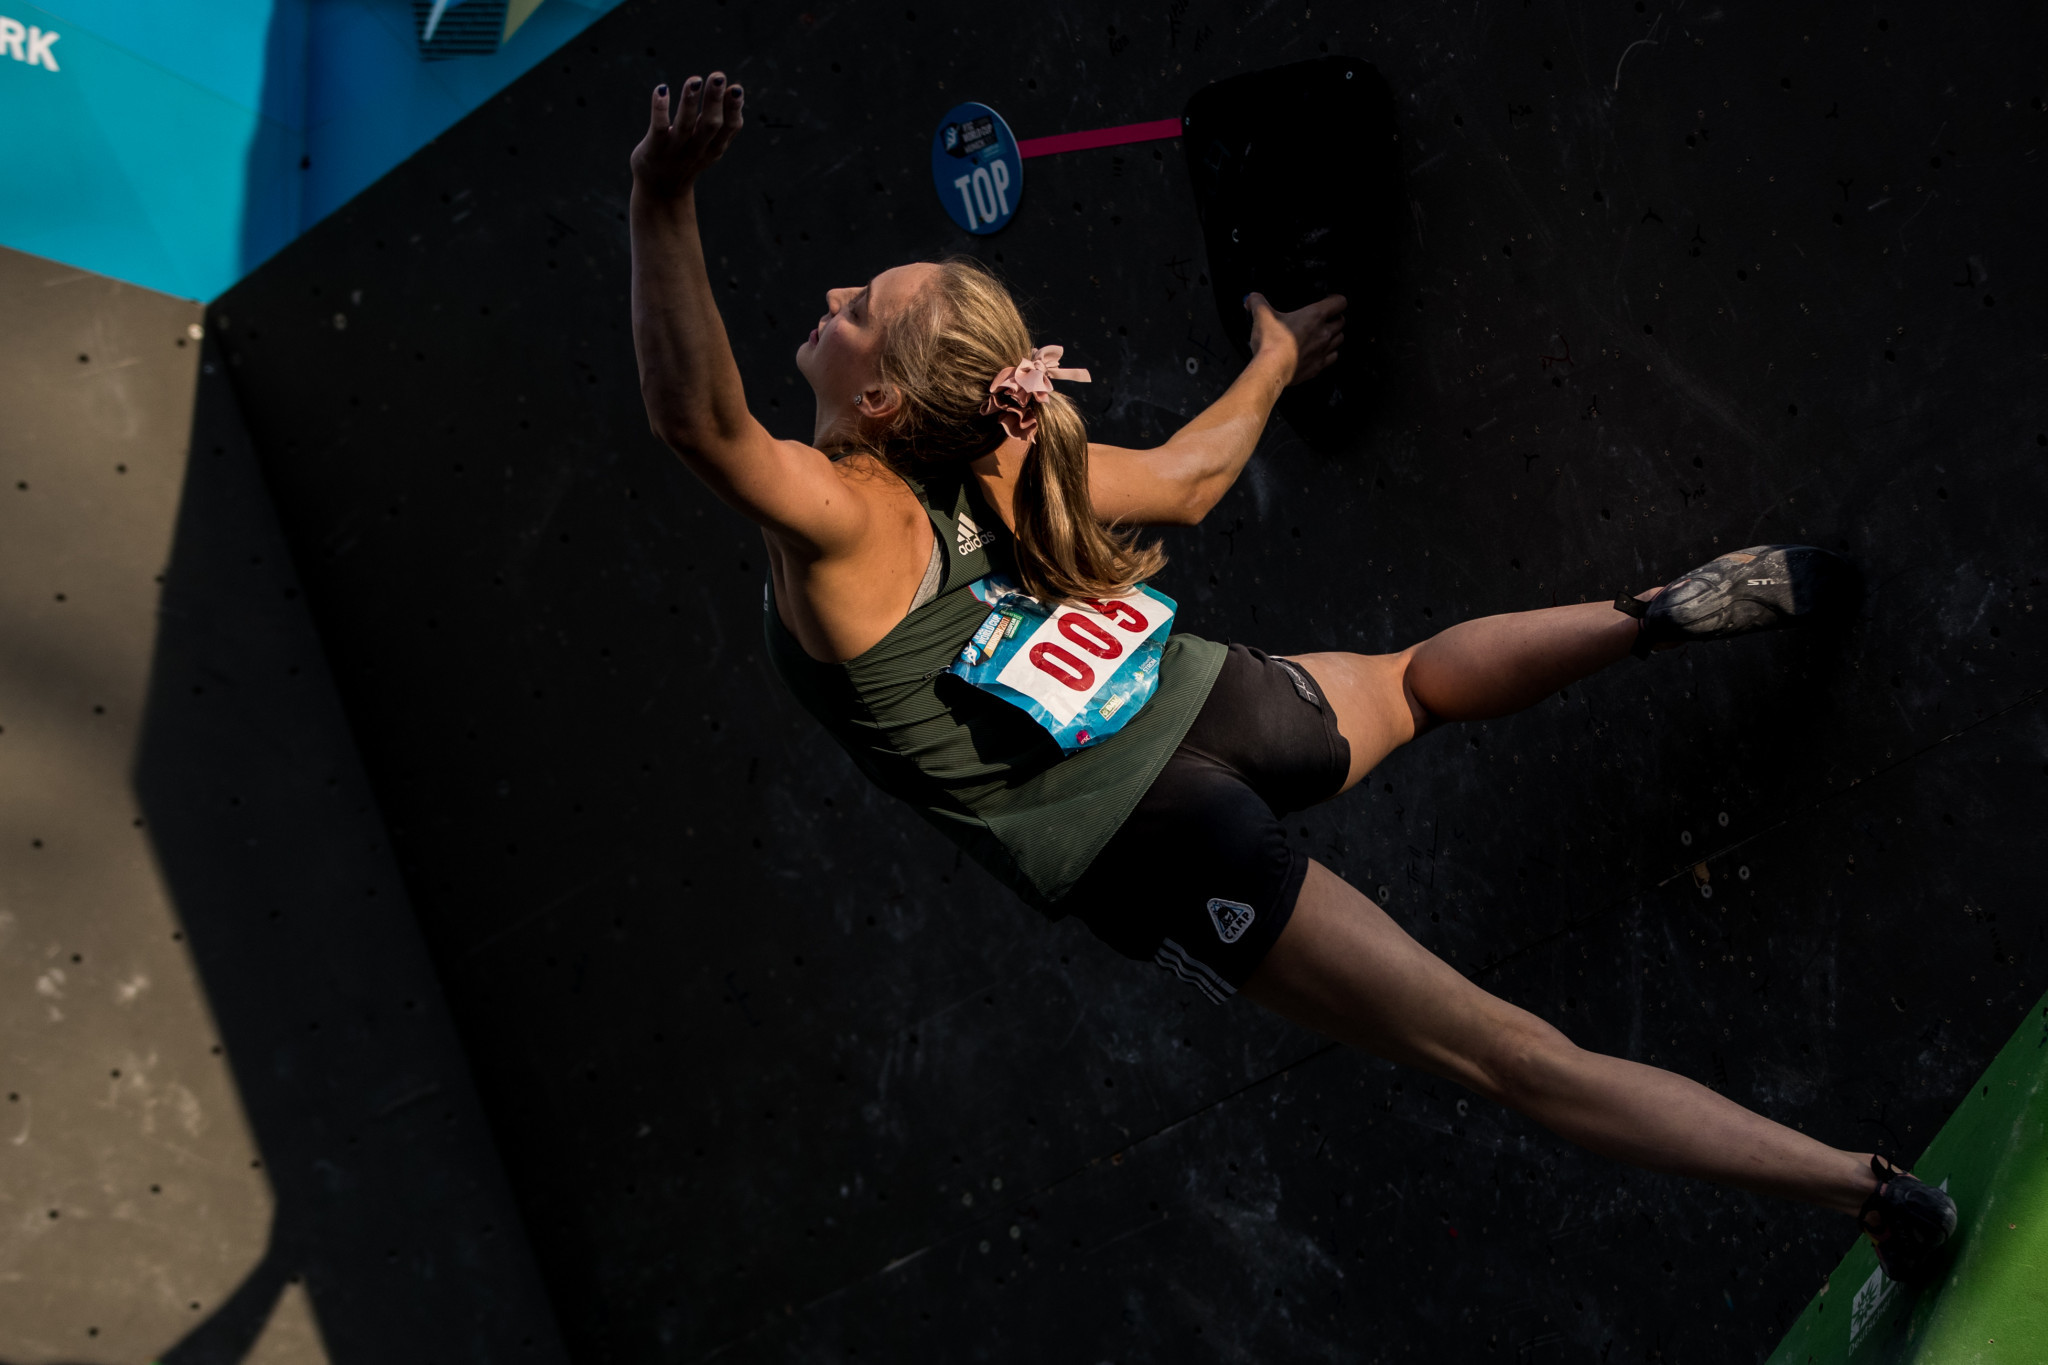 Munich will be one of the cities to host the IFSC World Cup ©IFSC